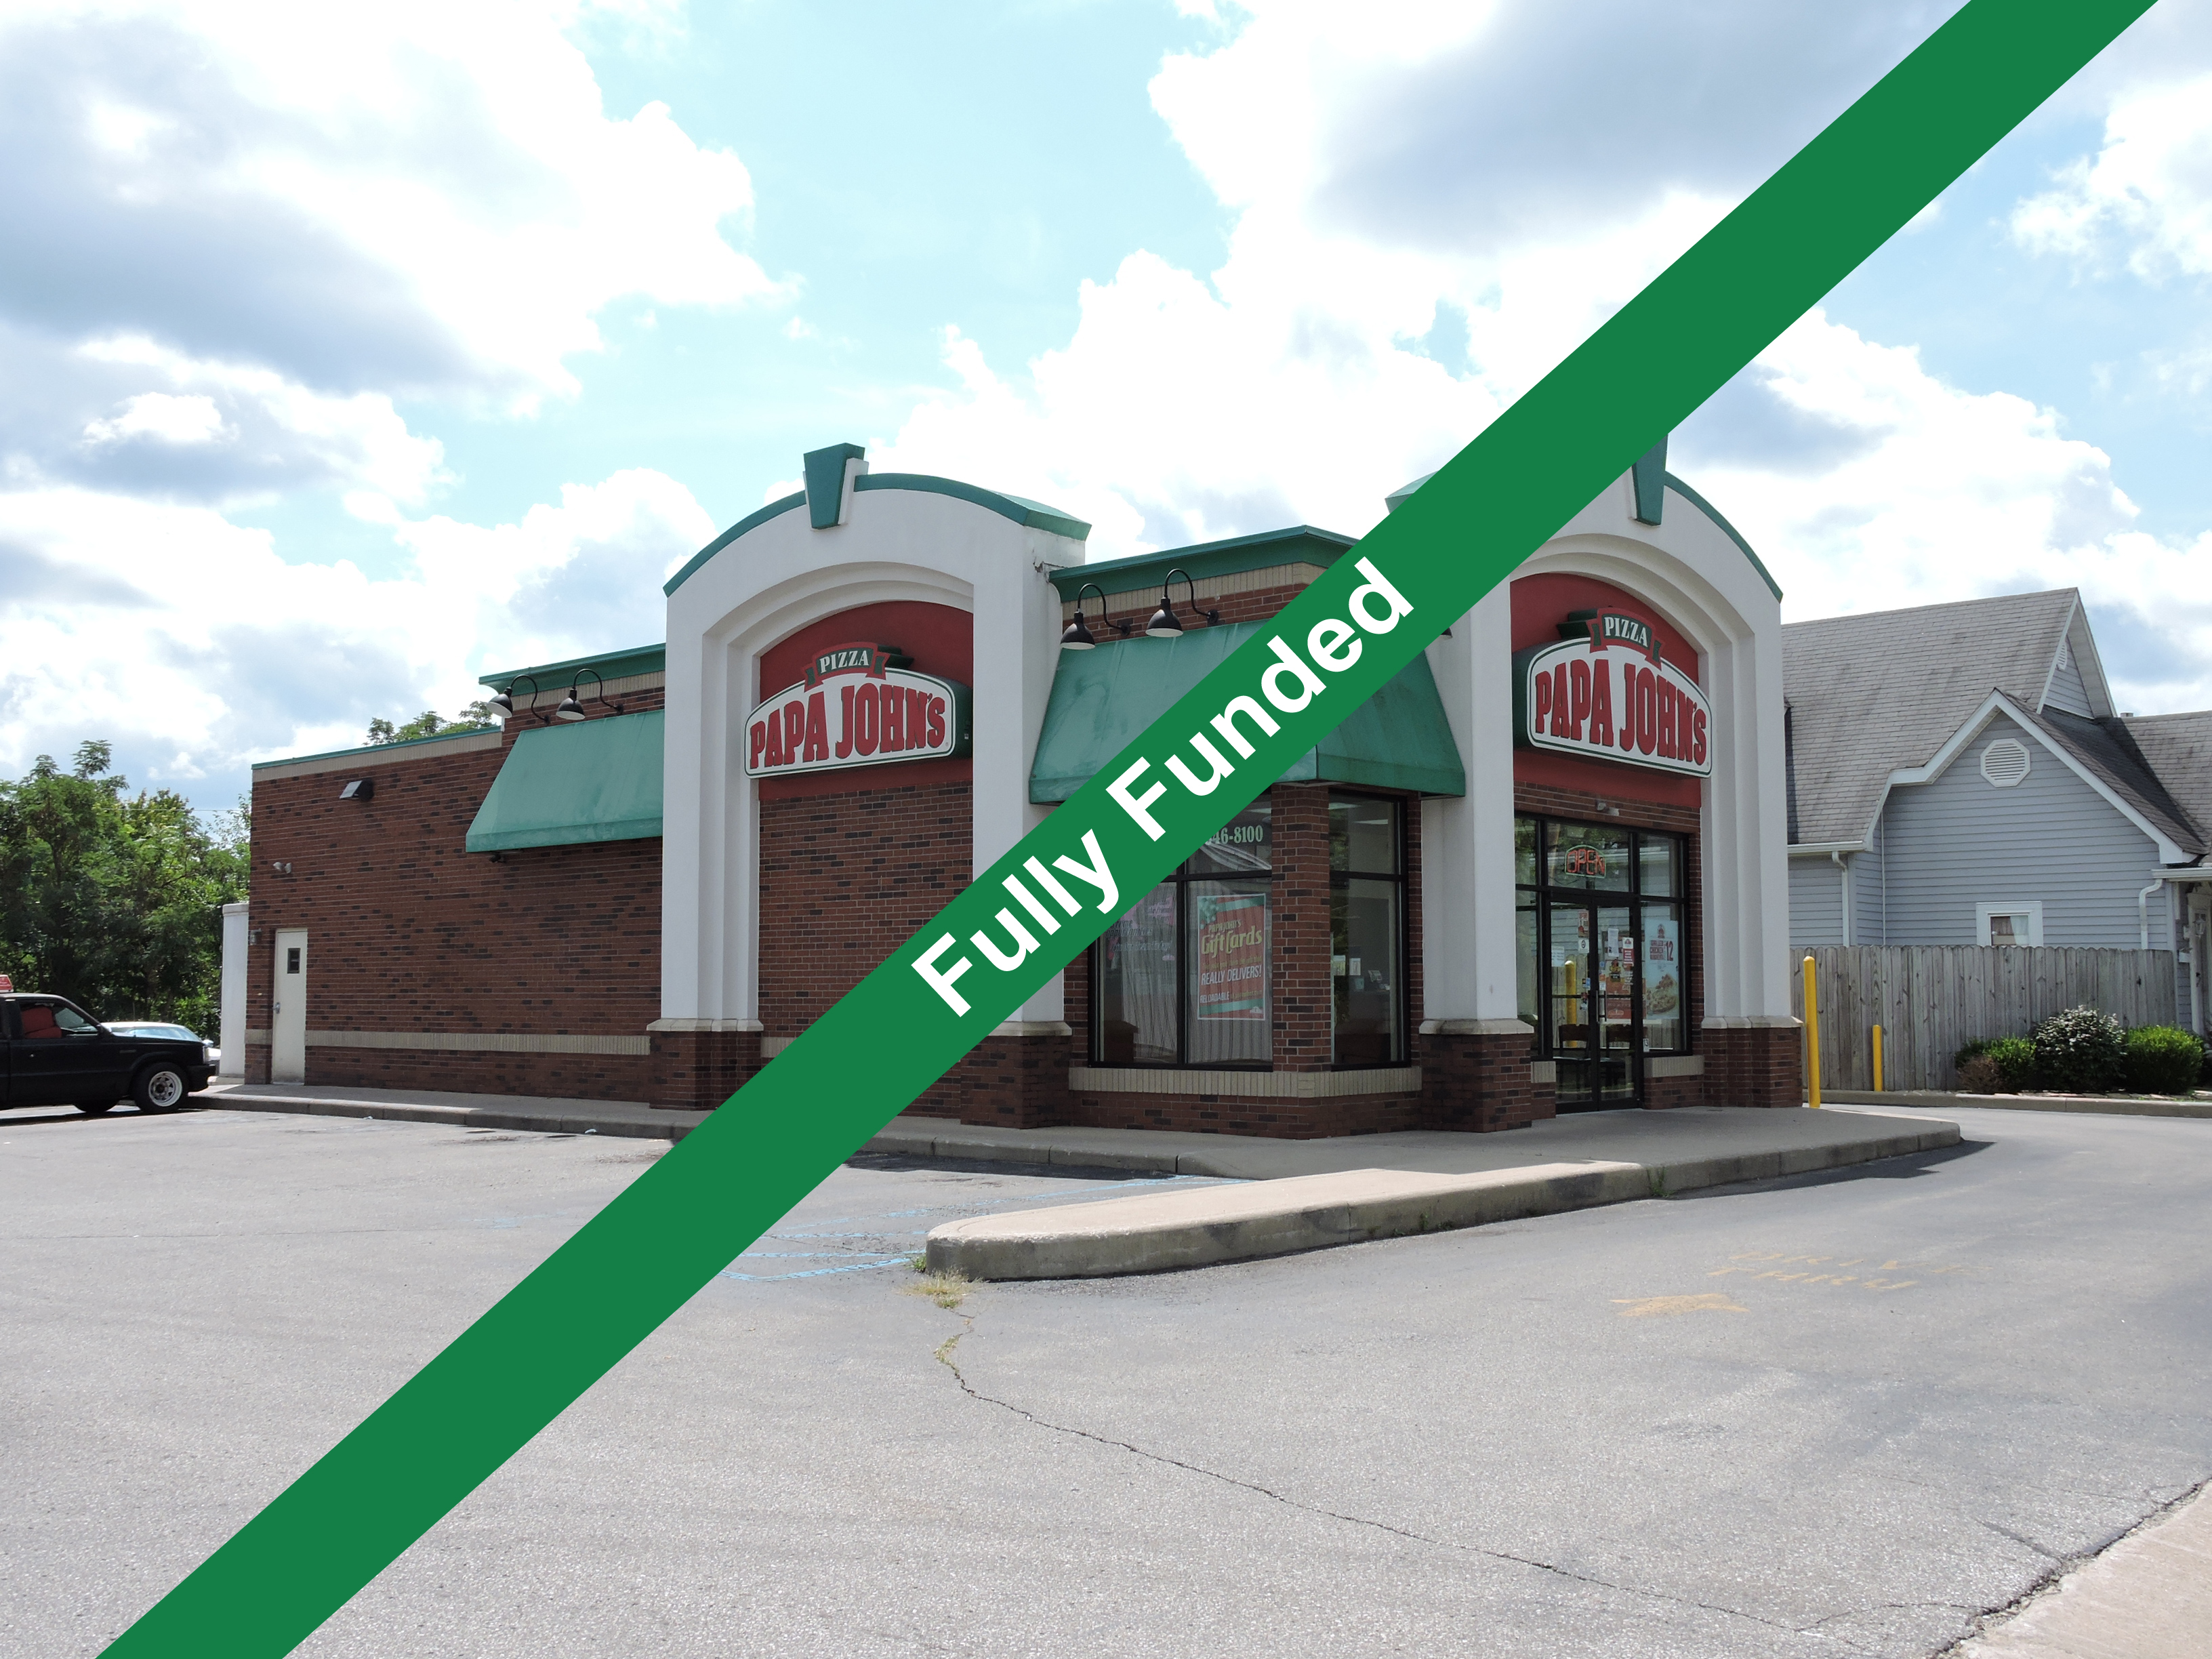 Papa John's Salem, Indiana| Crowdfunding Real Estate Investment Fully Funded